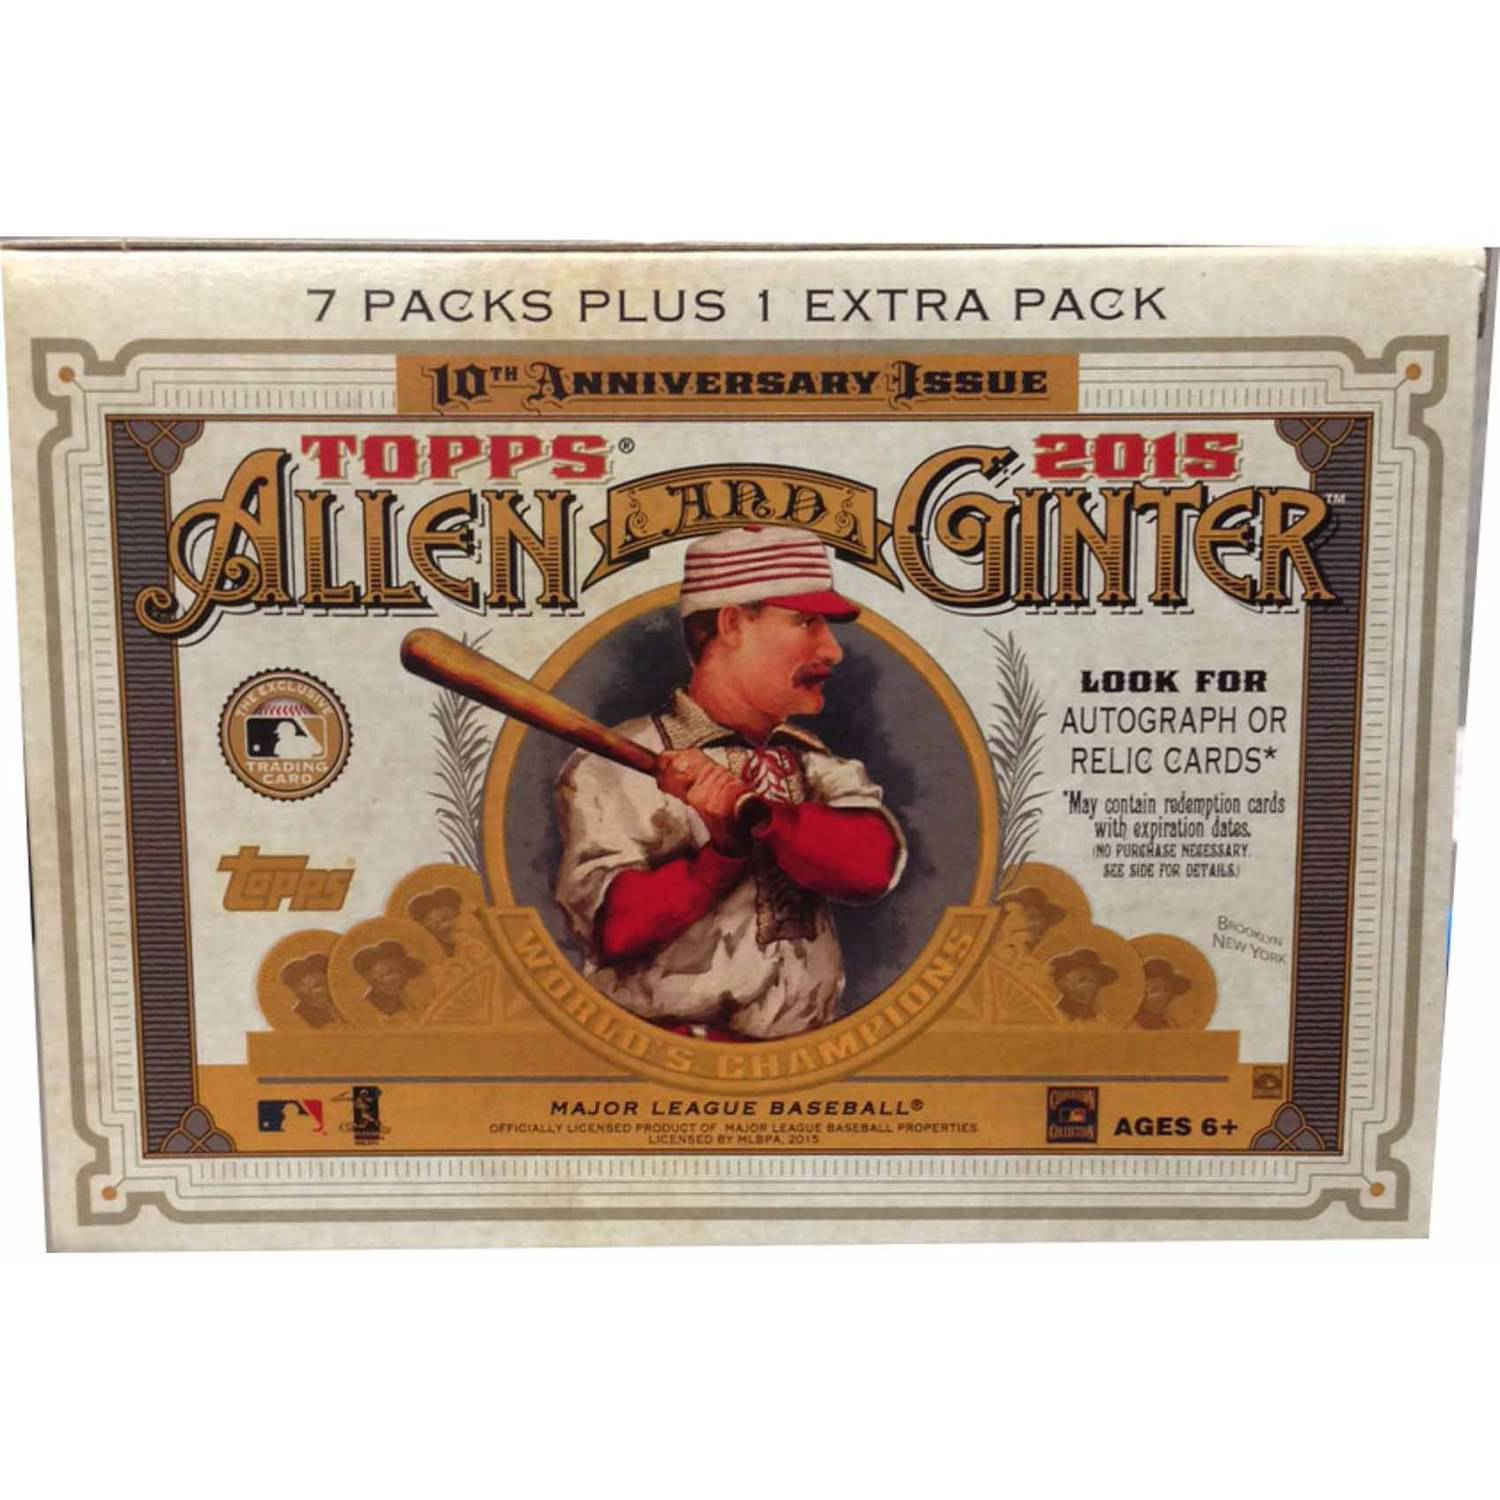 2015 Topps Allen & Ginter Trading Card Blaster Box 10th Anniversary Issue